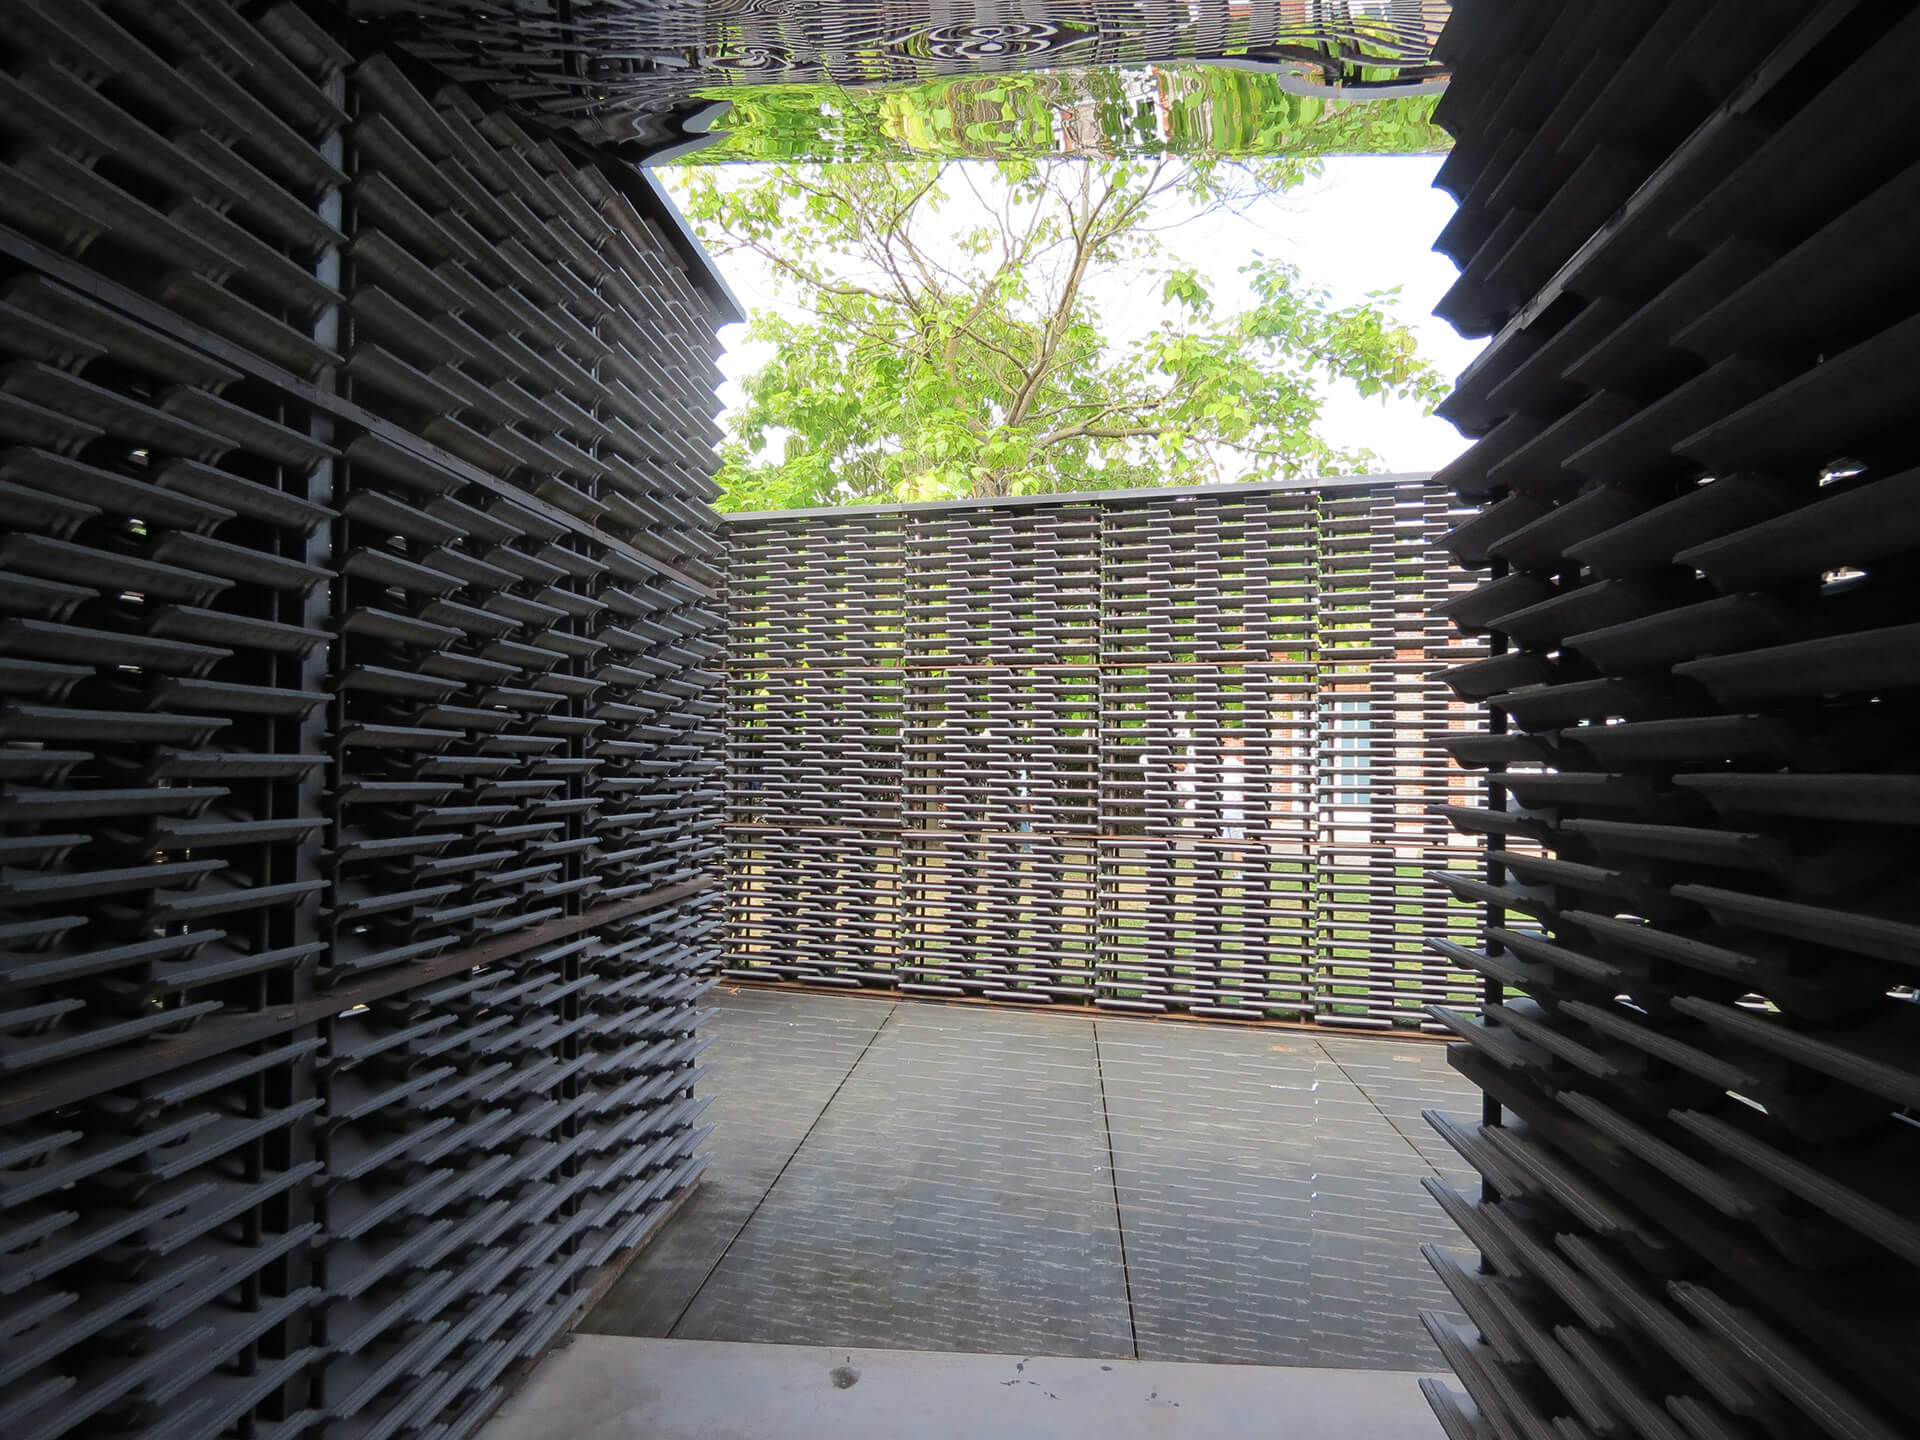 The Serpentine pavilion, 2018, by Frida Escobedo was a lattice assembly composed of a reinterpretation of the Mexican